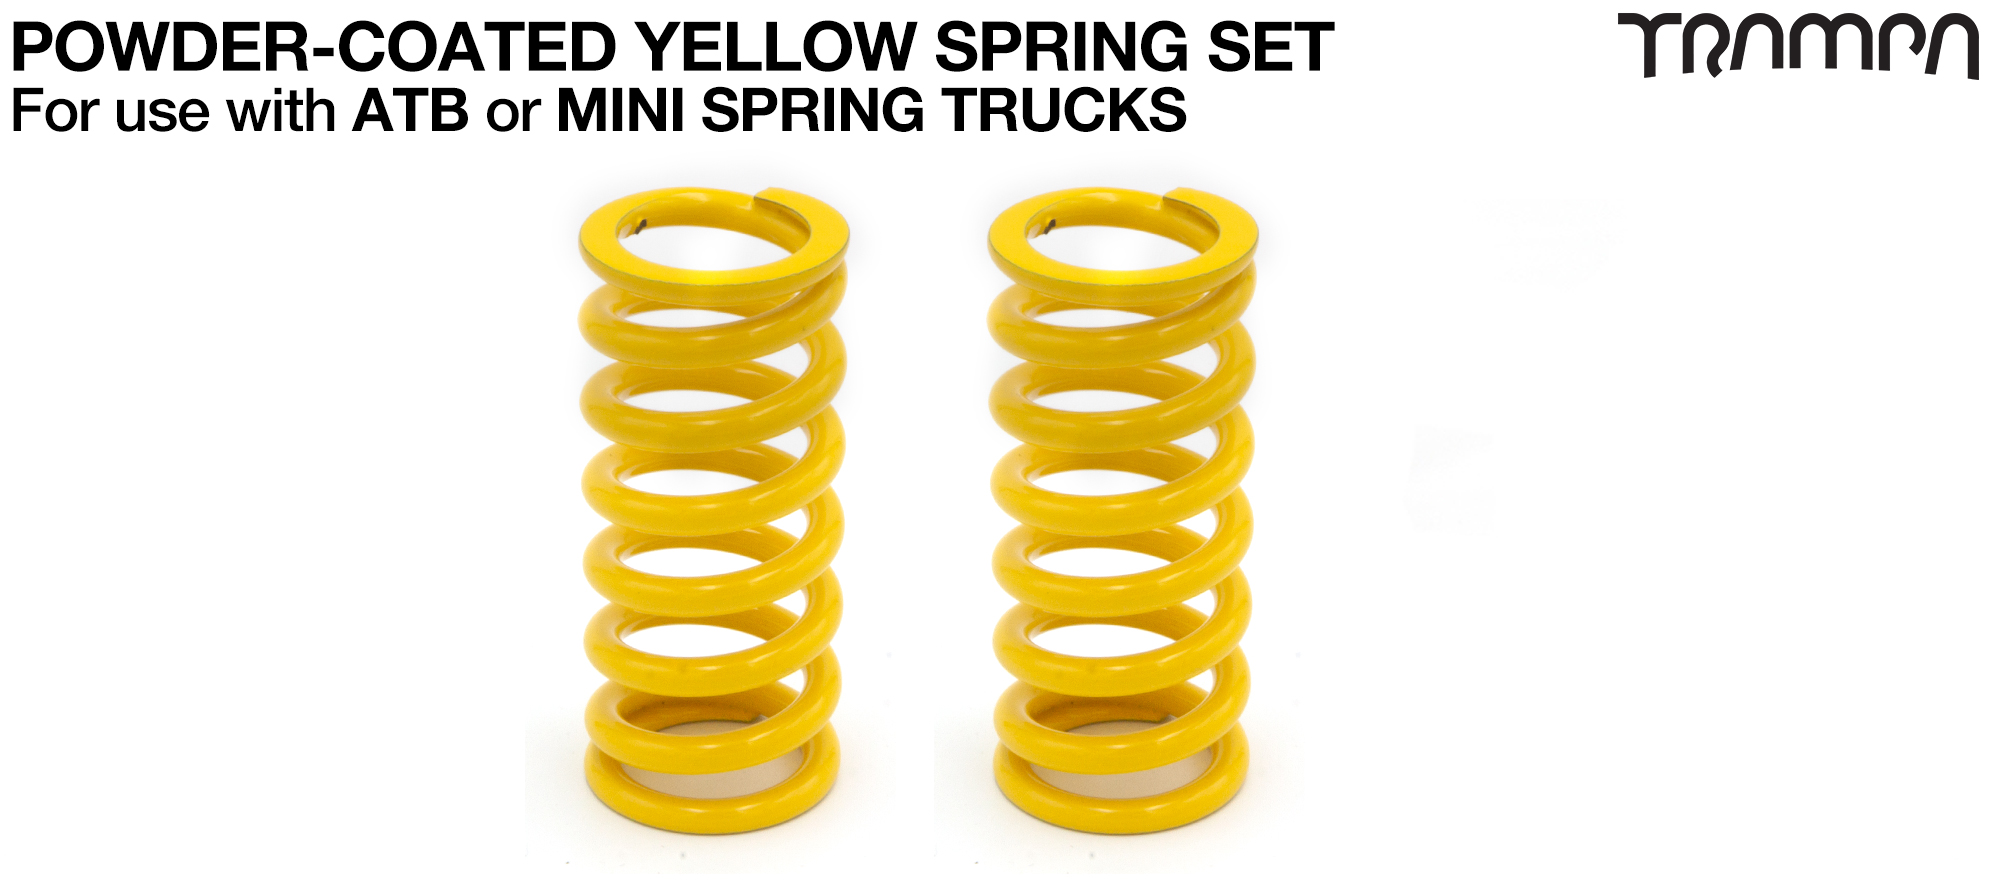 YELLOW Powder coated Steel Springs x2